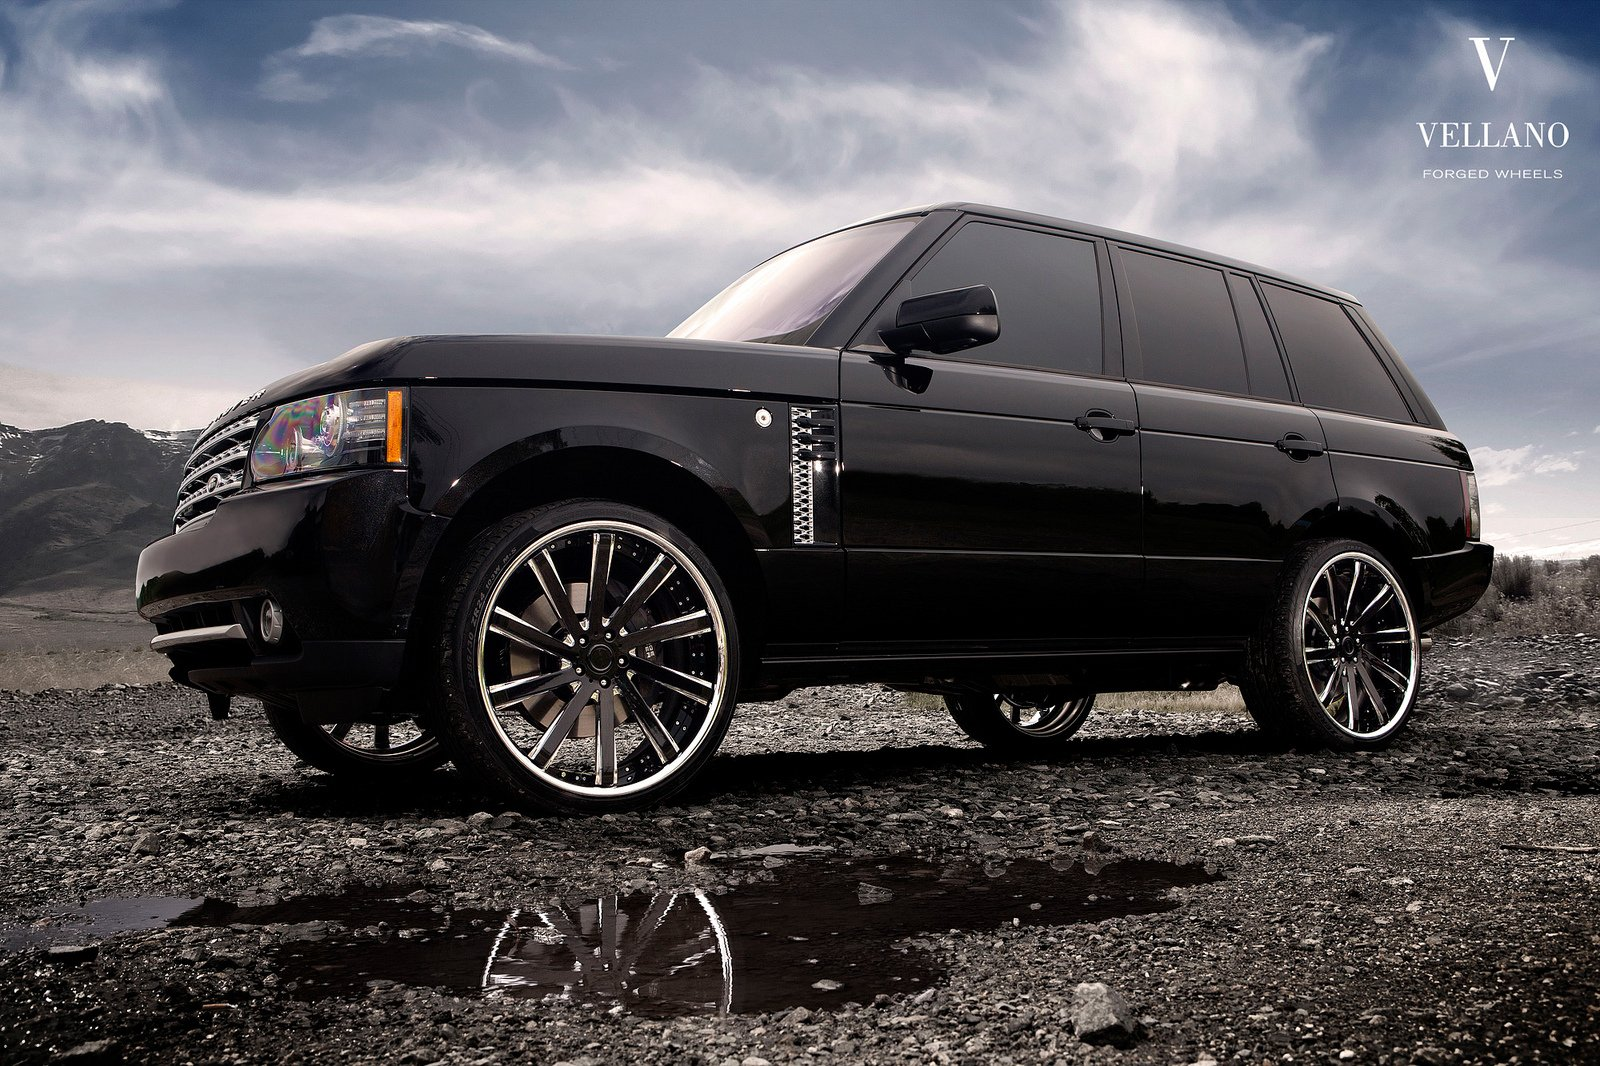 range rover hse black vellano wheels tuning cars wallpaper. Black Bedroom Furniture Sets. Home Design Ideas